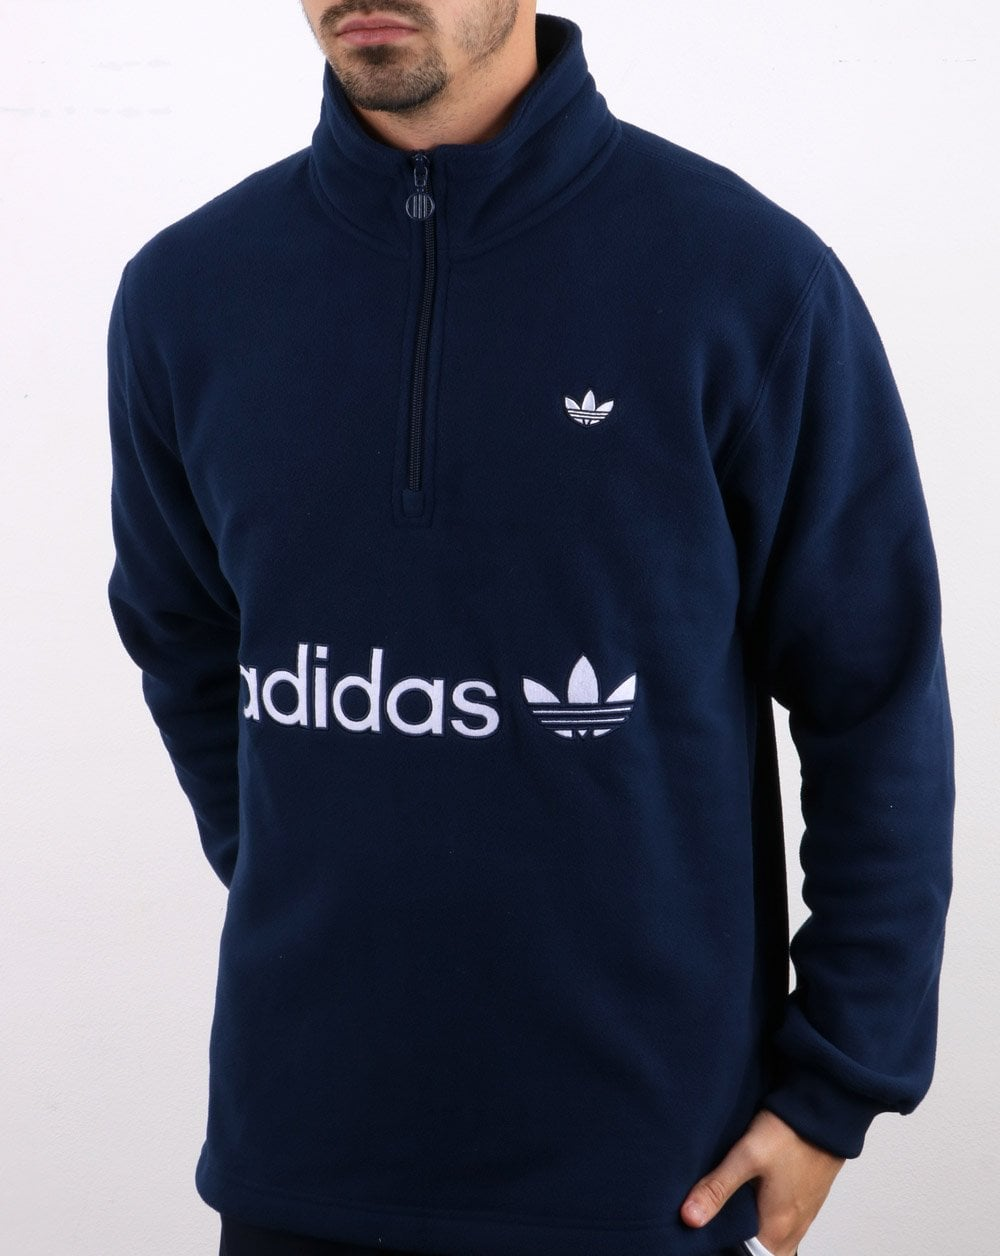 Adidas Originals Half Zip Polarfleece Navy.